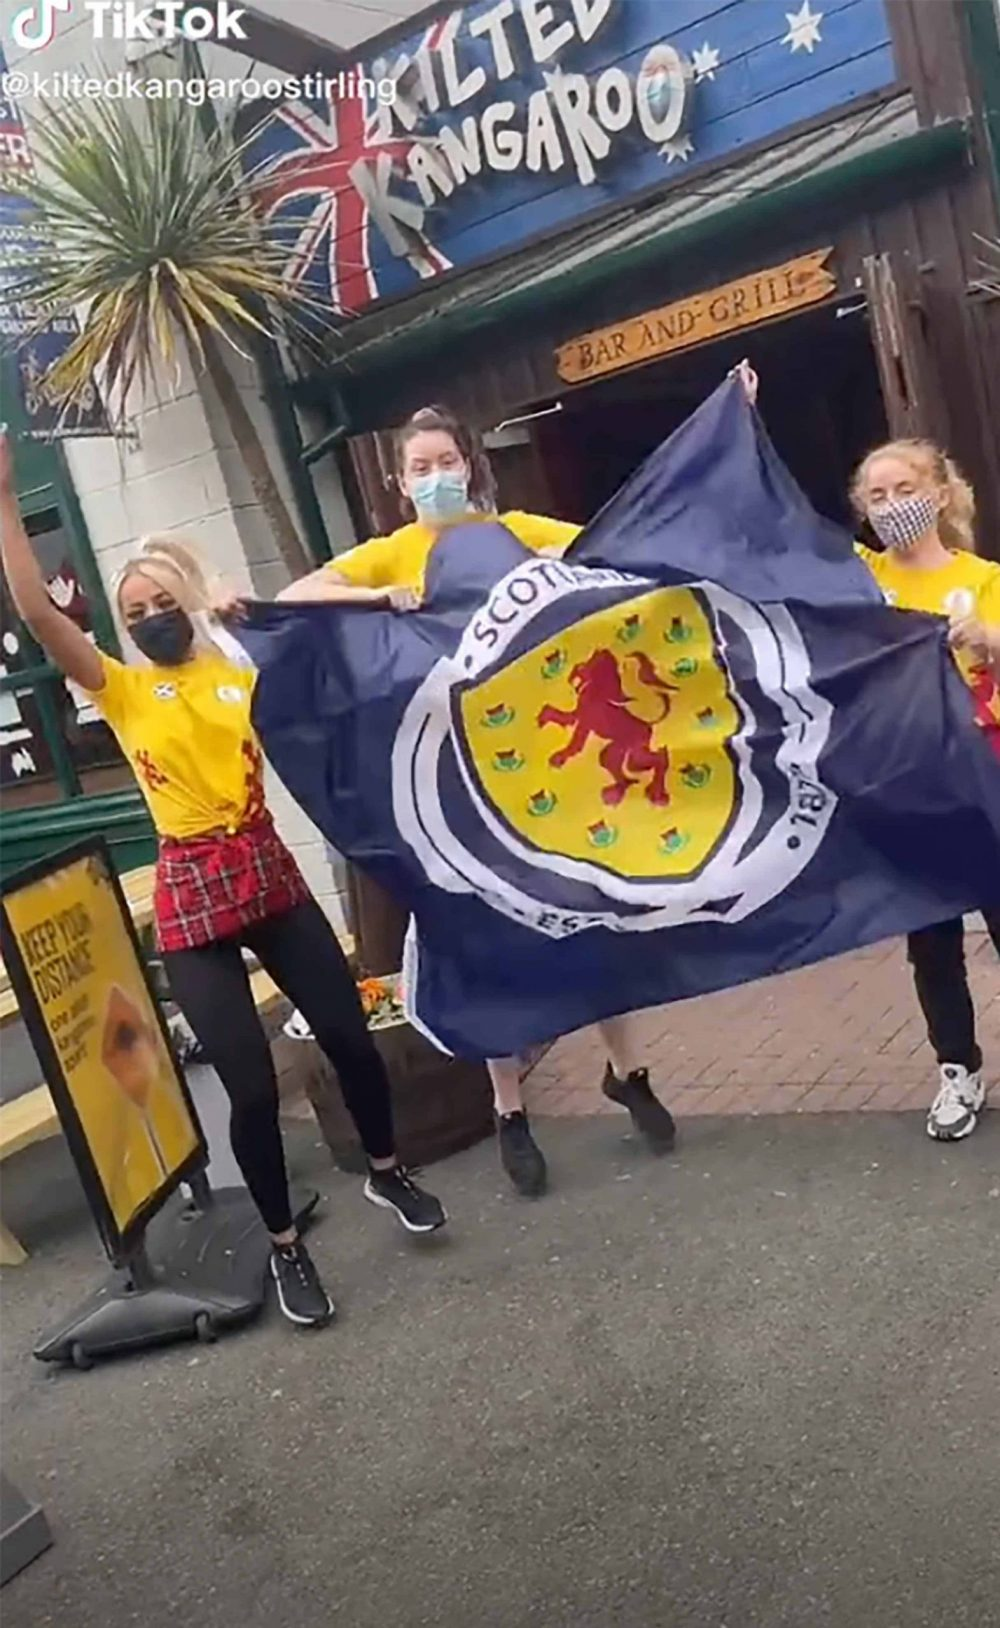 The bar staff ready for the Euros - Scottish hospitality news